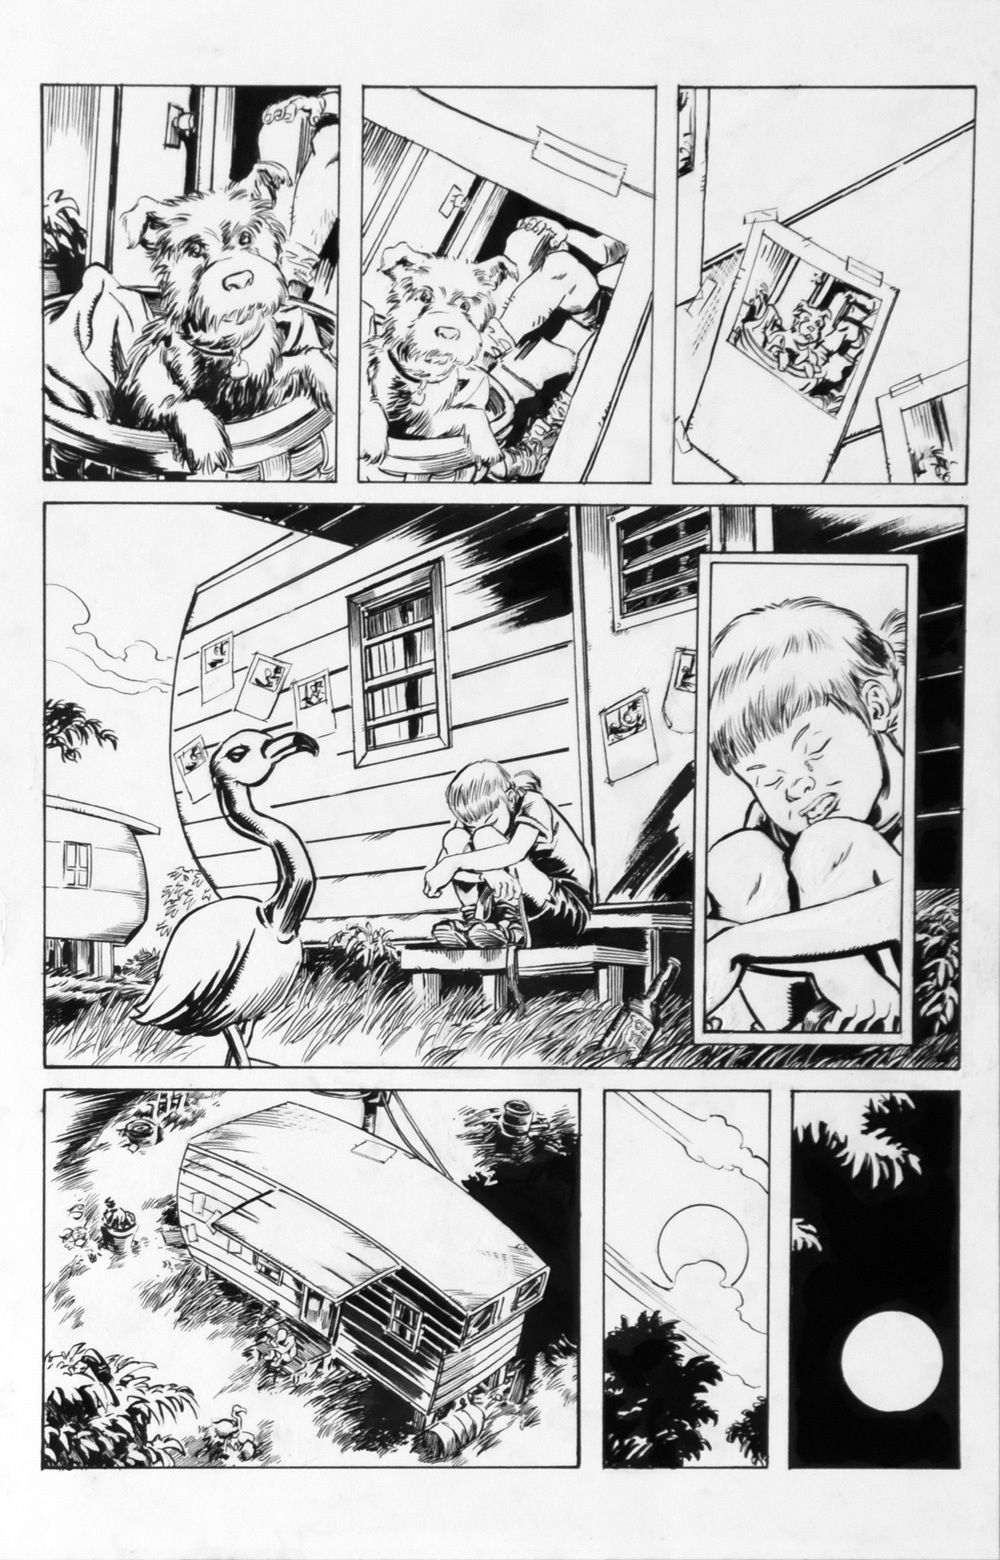 DEAN KOTZ Original Published Art, TRAILER PARK of TERROR #6 page 25,Zombies